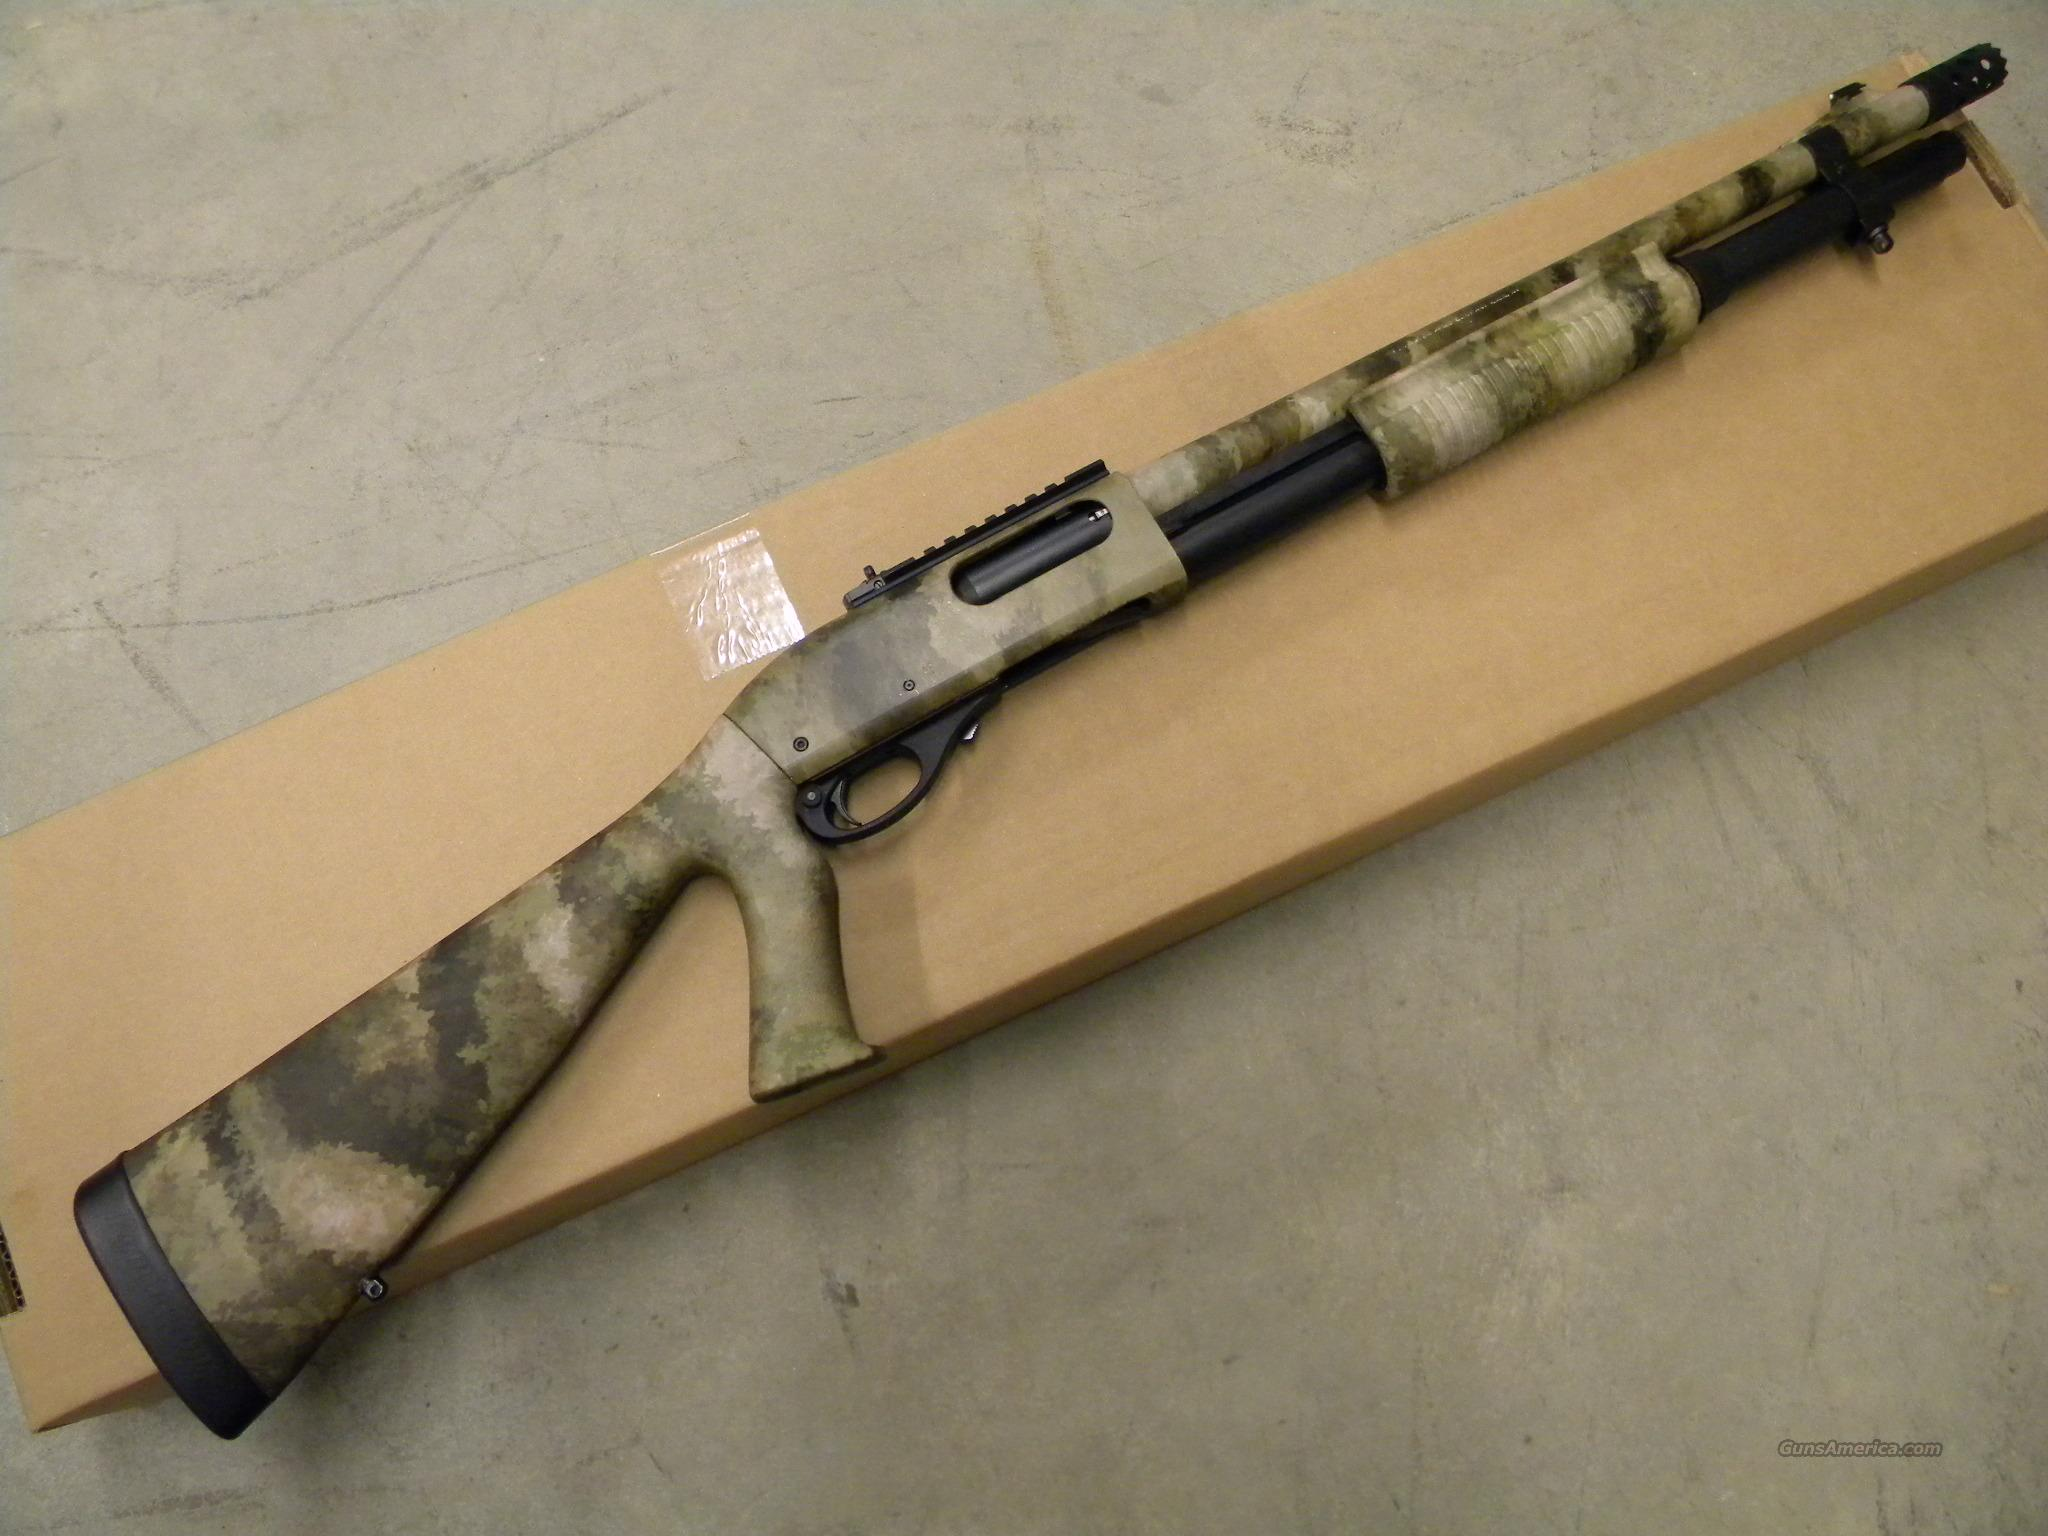 dating remington 870 shotgun Remington premier once fired hulls 12 gauge popular shotshell for reloading remington 721 270 for sale legendary quality & accuracy 17 remington fireball ultra high velocity 4,000 fps bullet remington 1911 pistol remington's version of the 1911 223 rem (556x45 nato) the 223 is a very popular round wooden gun rack.